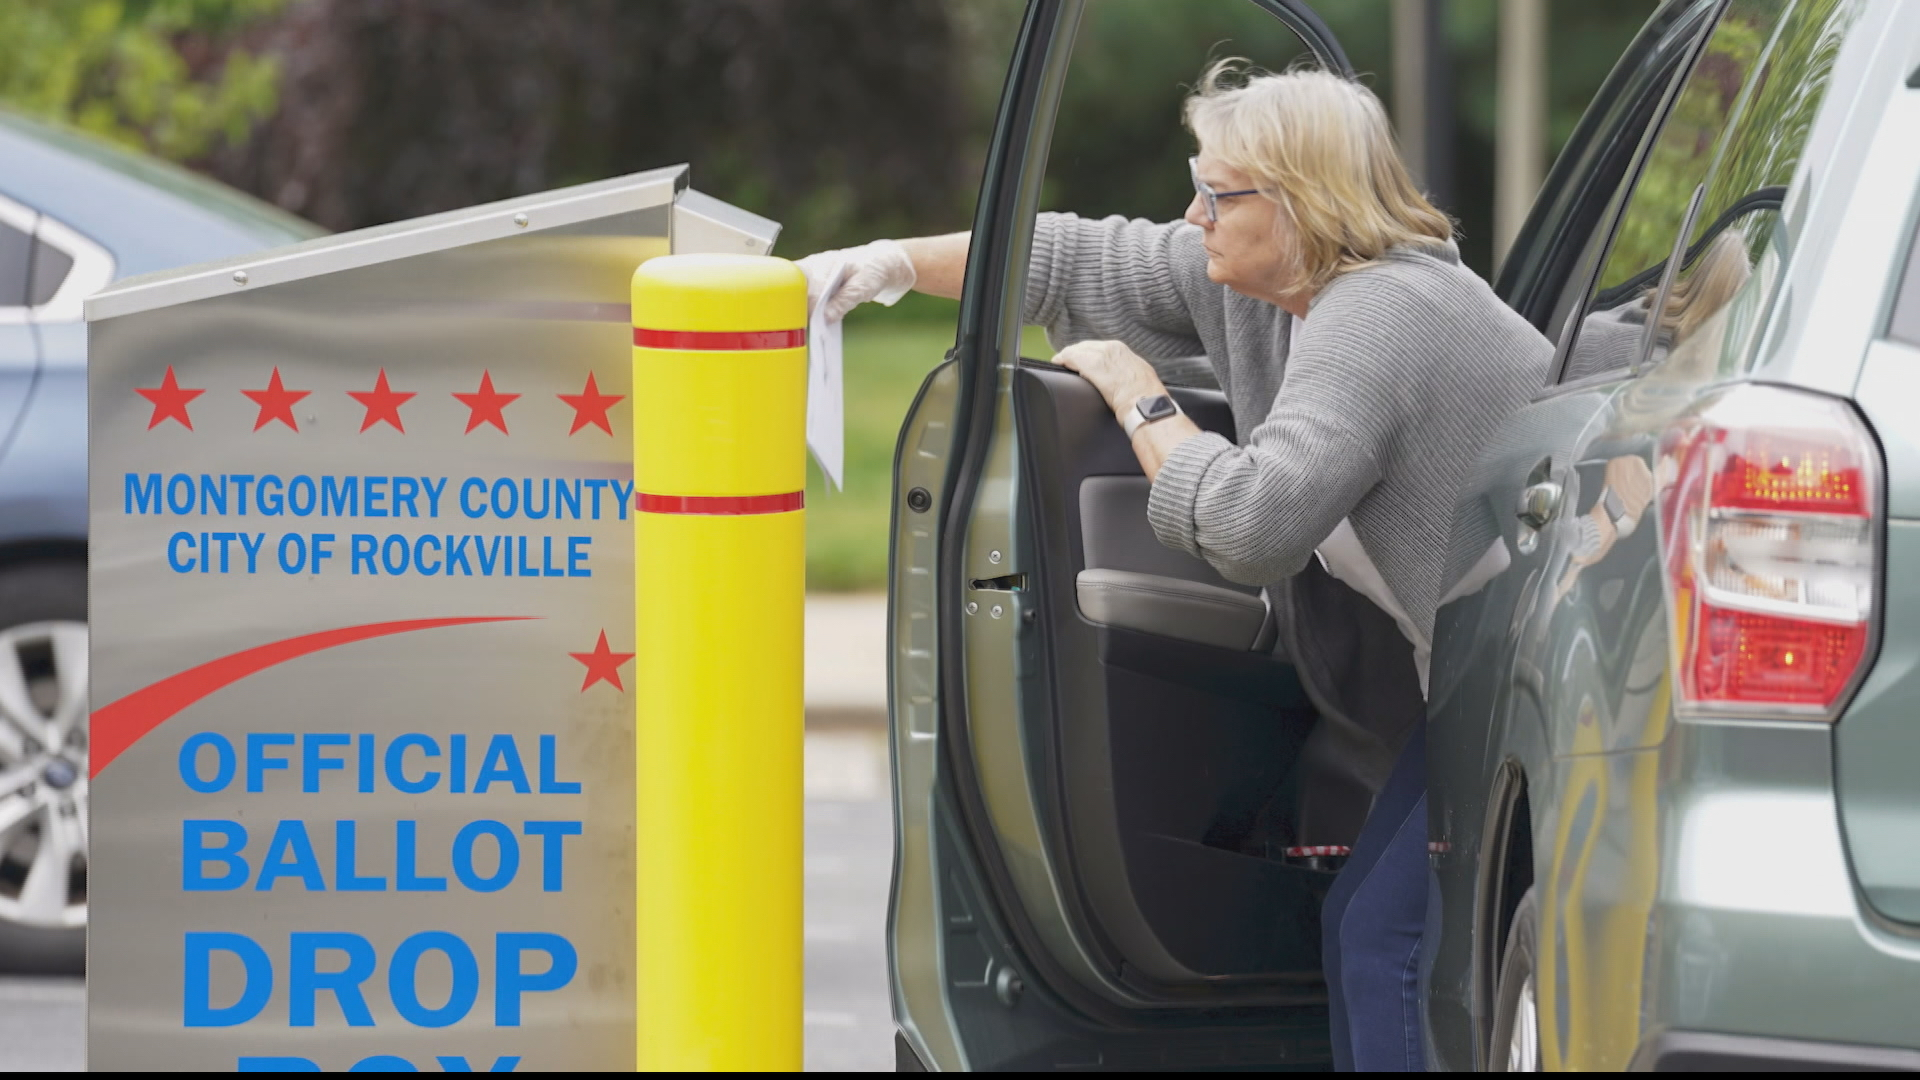 US elections 2020: Ballot drop boxes installed across states thumbnail